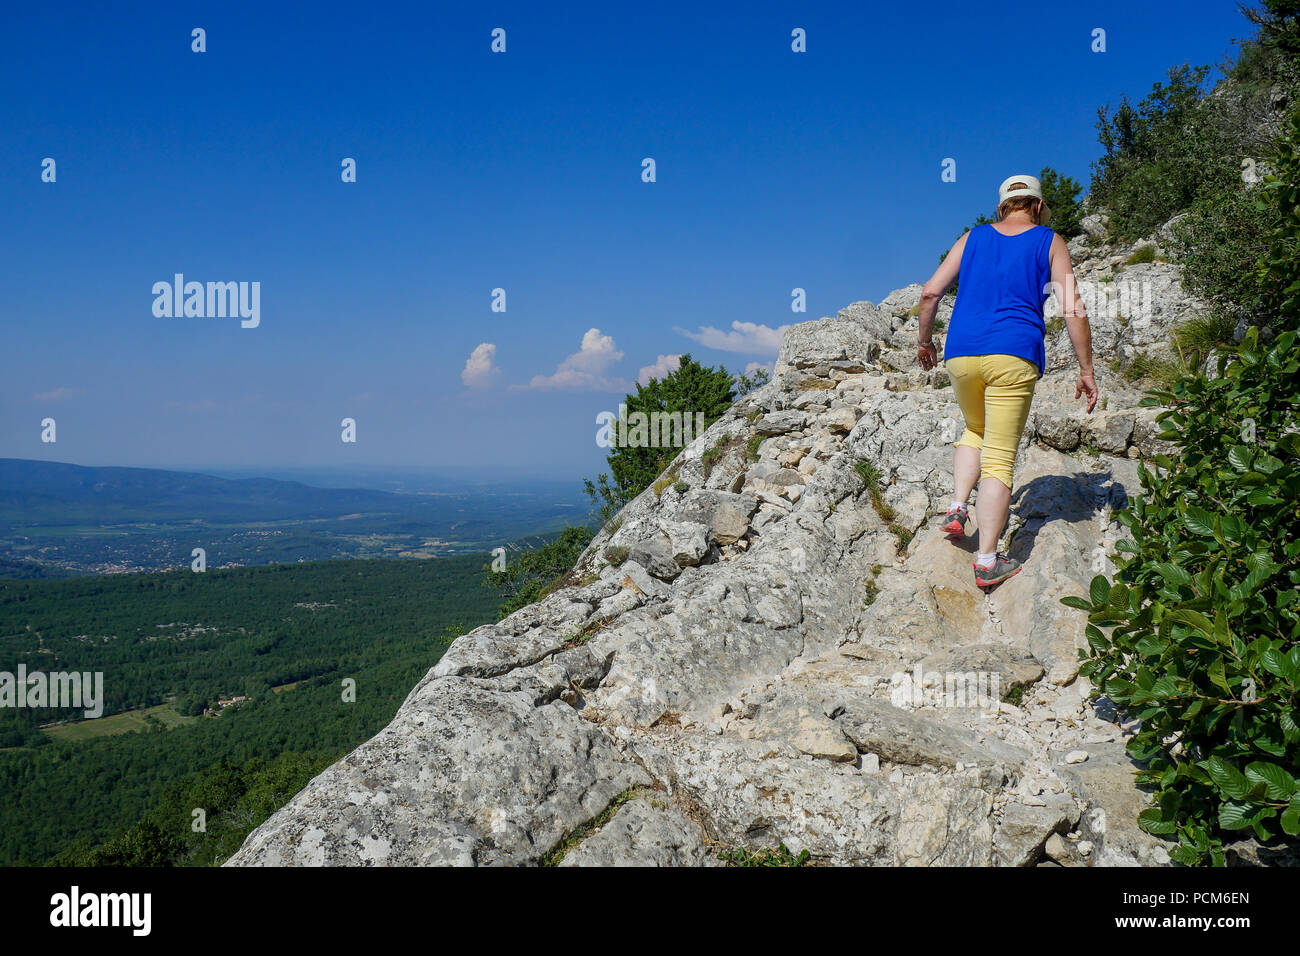 Mountain Hiking, Sainte-Baume, Var, France - Stock Image